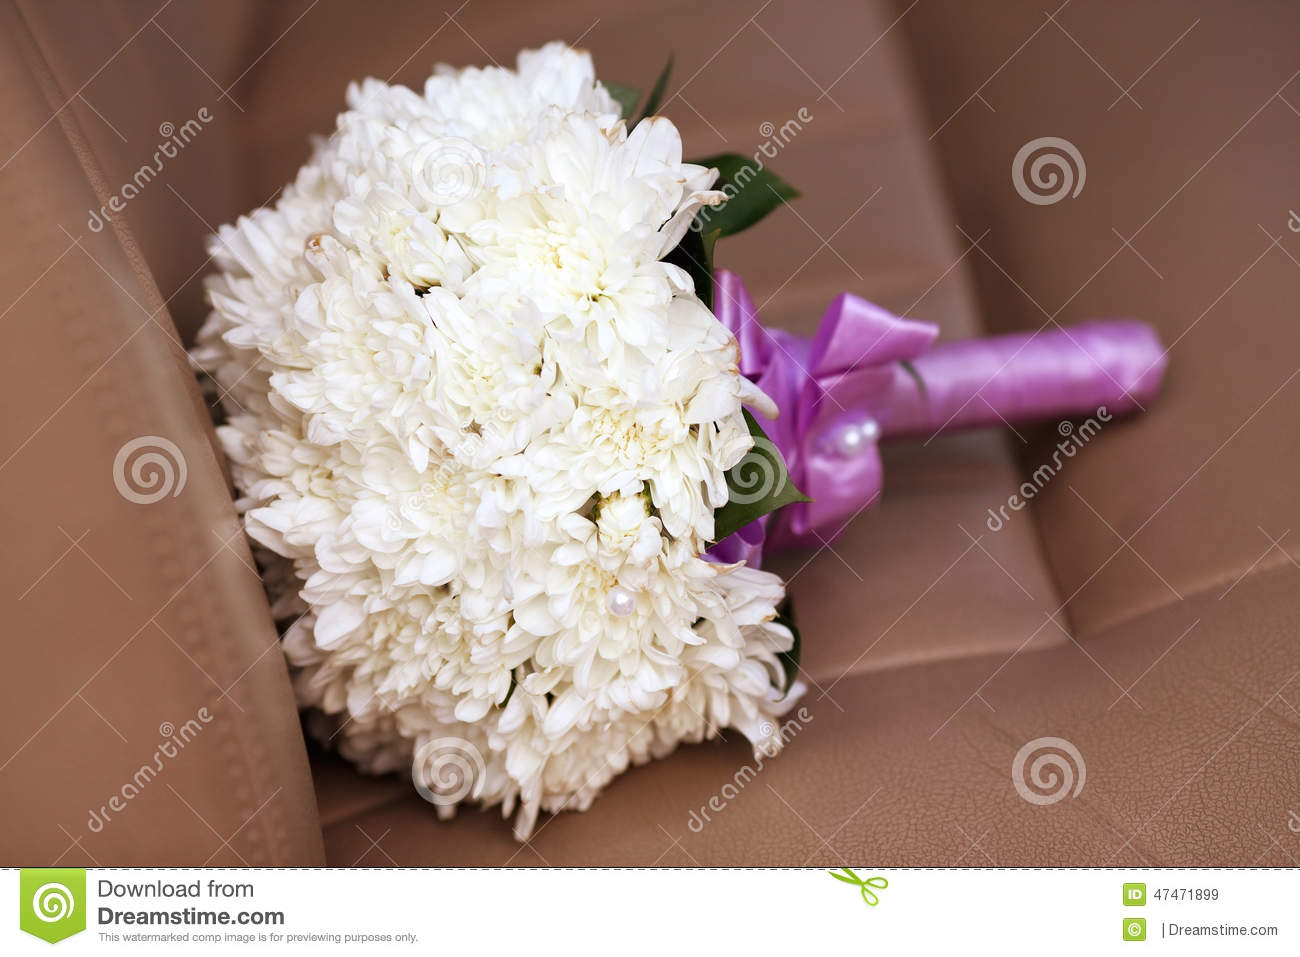 white chrysanthemum wedding bouquet with purple stock photo, Beautiful flower